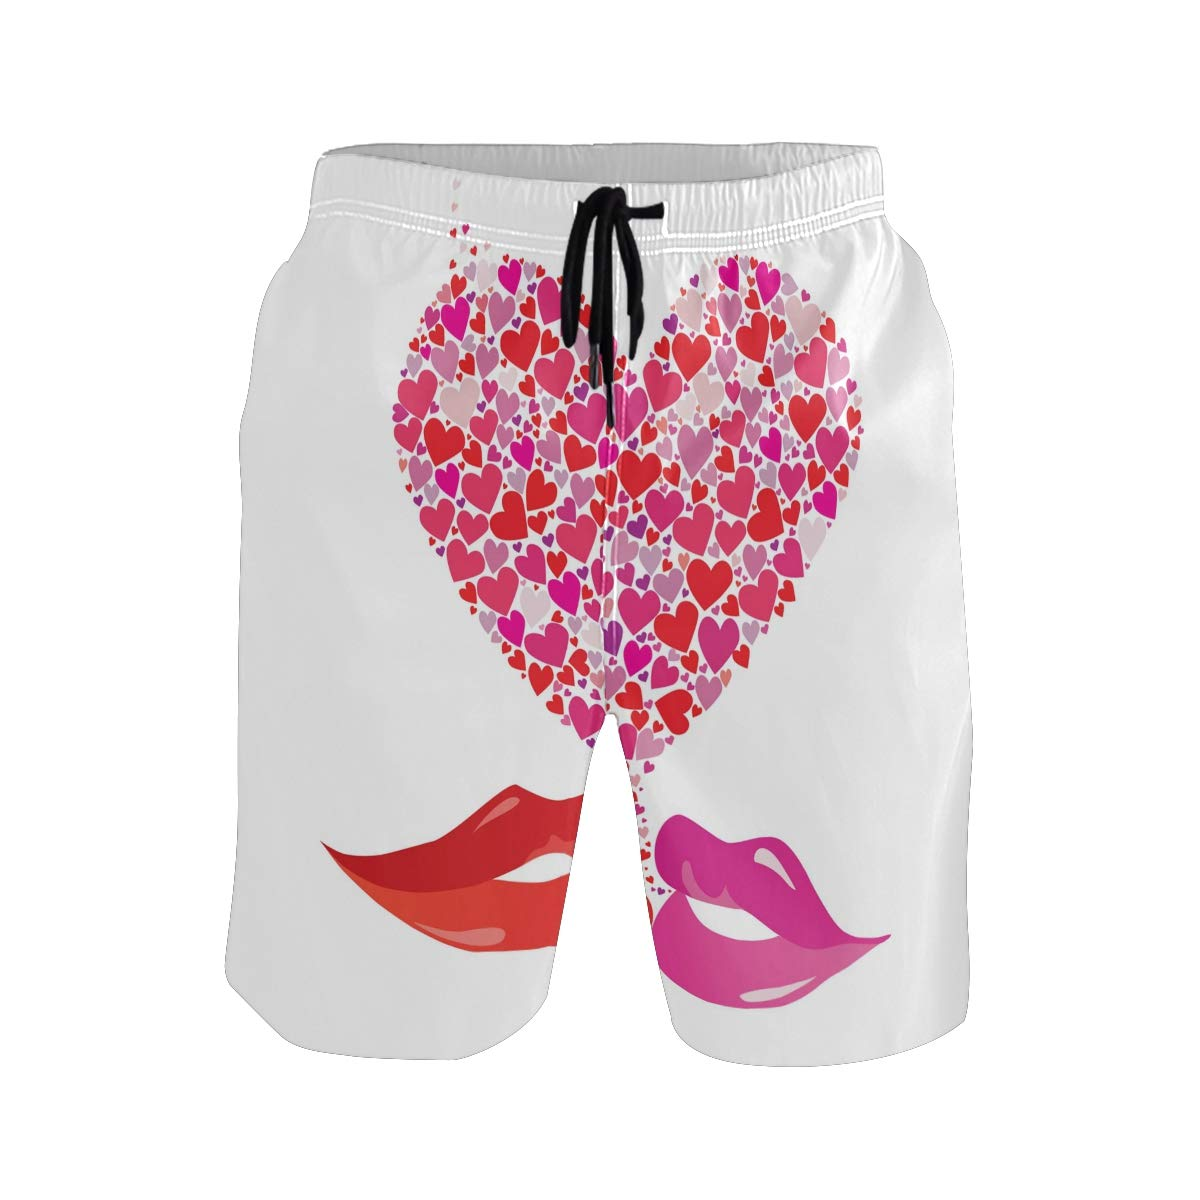 Mens Swim Trunks Valentines Day Love Heart Lips Quick Dry Beach Board Short with Mesh Lining